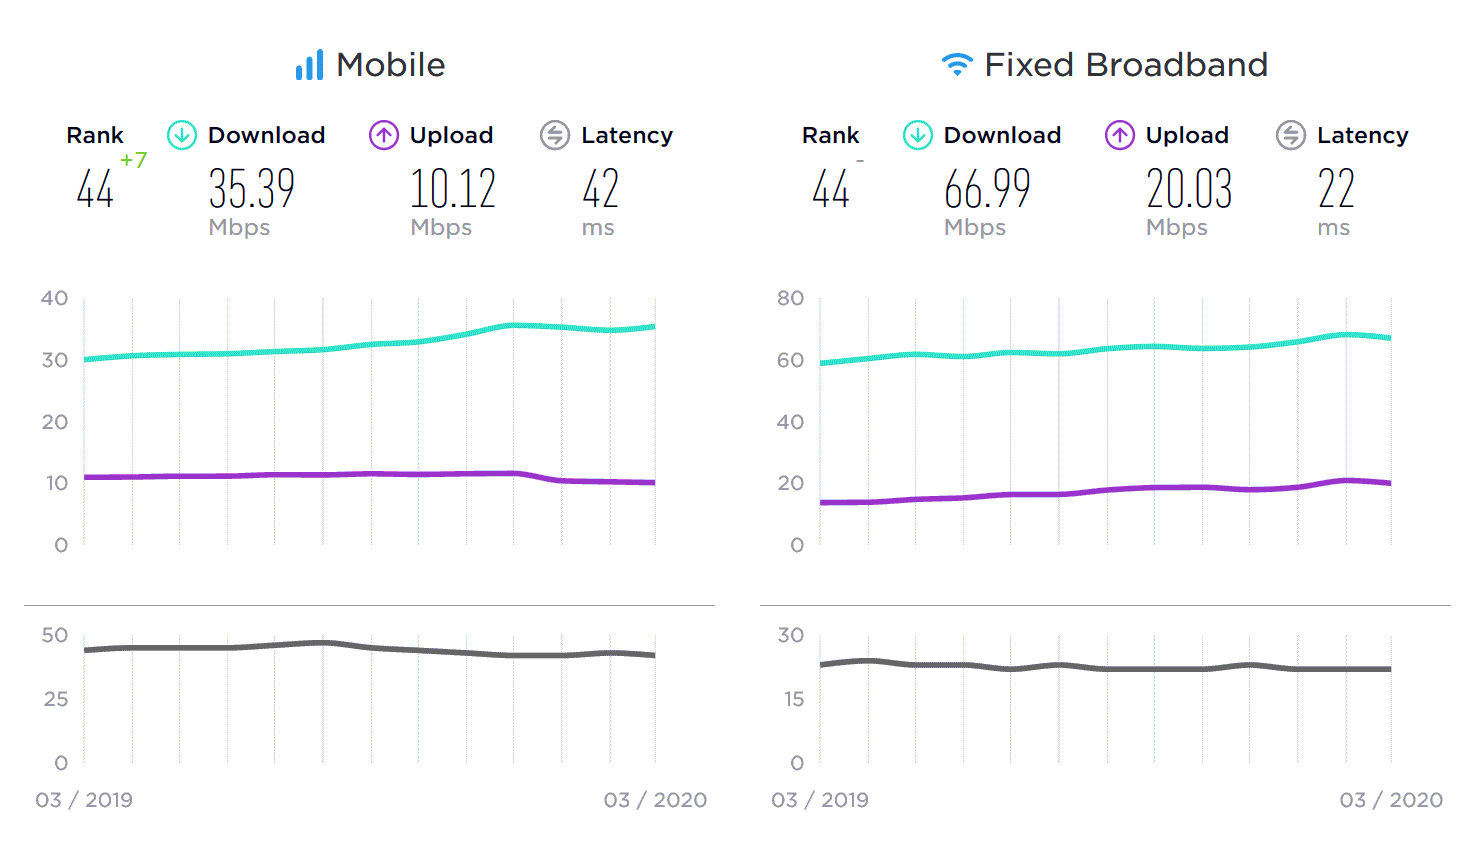 Ookla speedtest uk broadband and mobile - year to March 2020